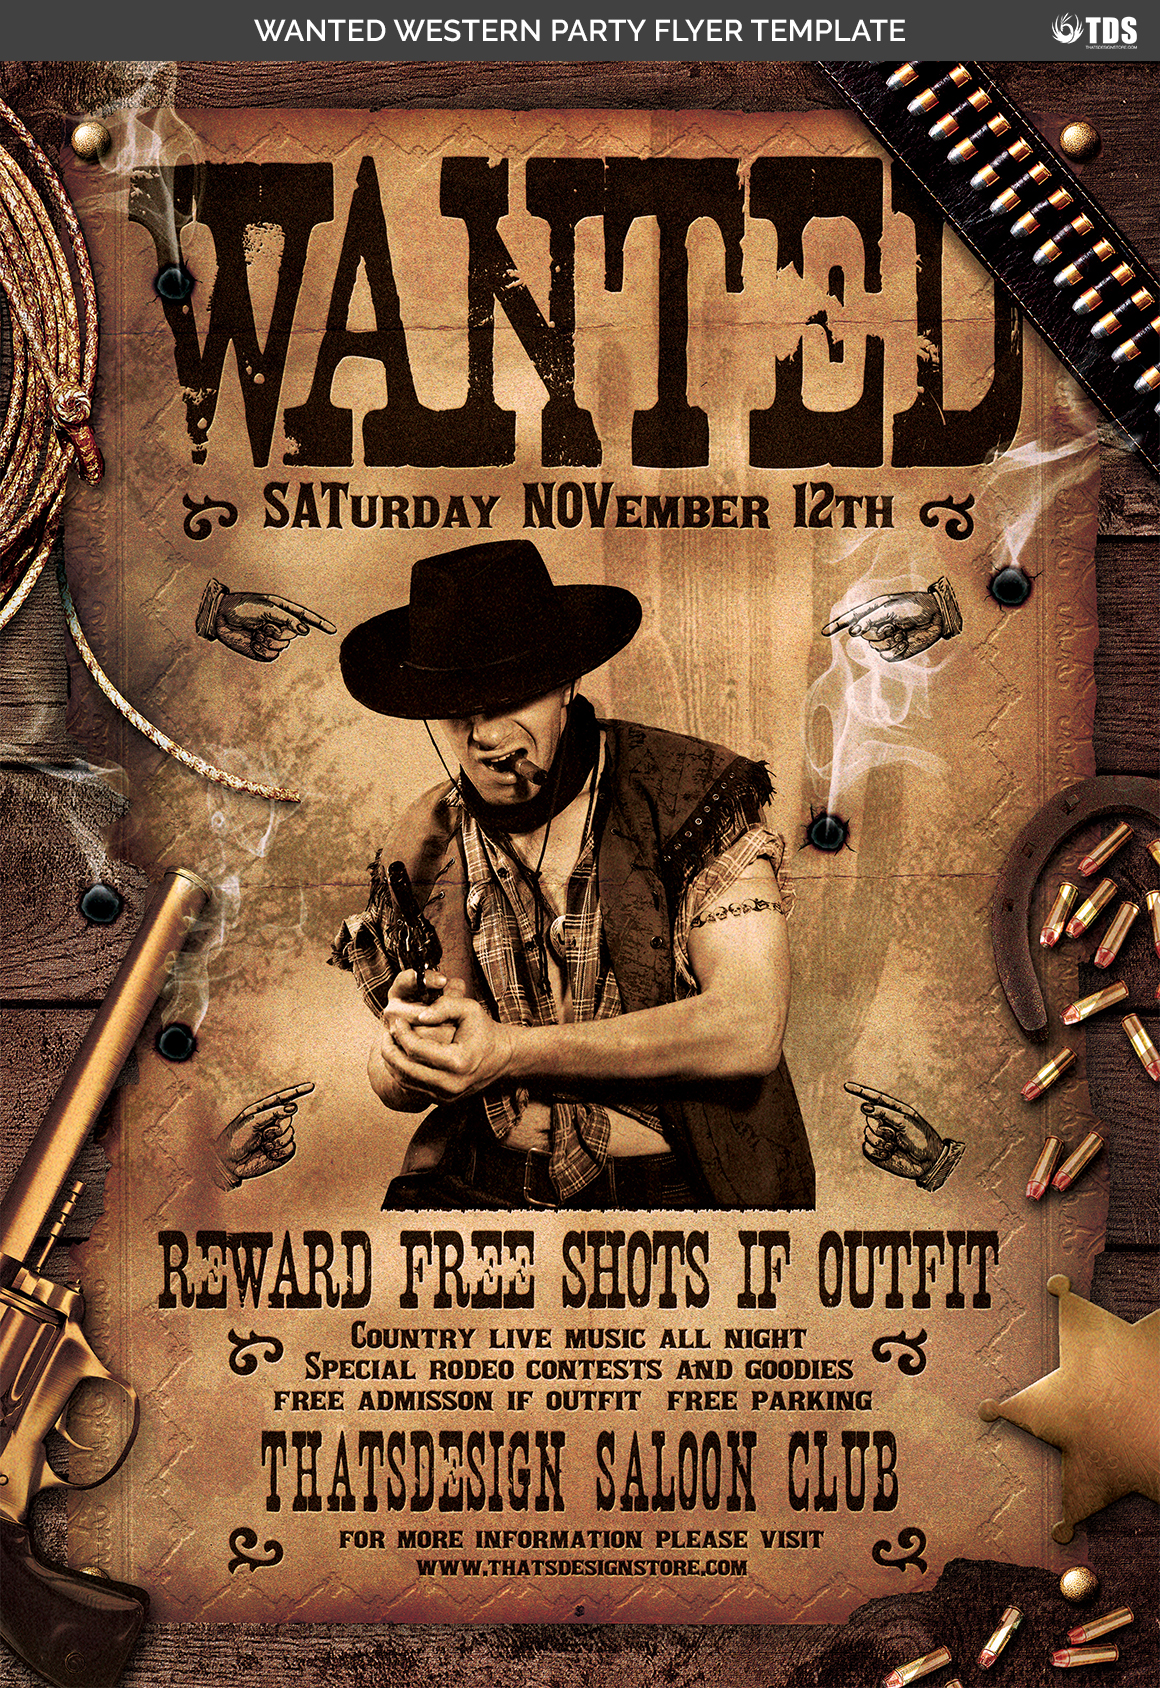 Wanted Western Party Flyer Template example image 7